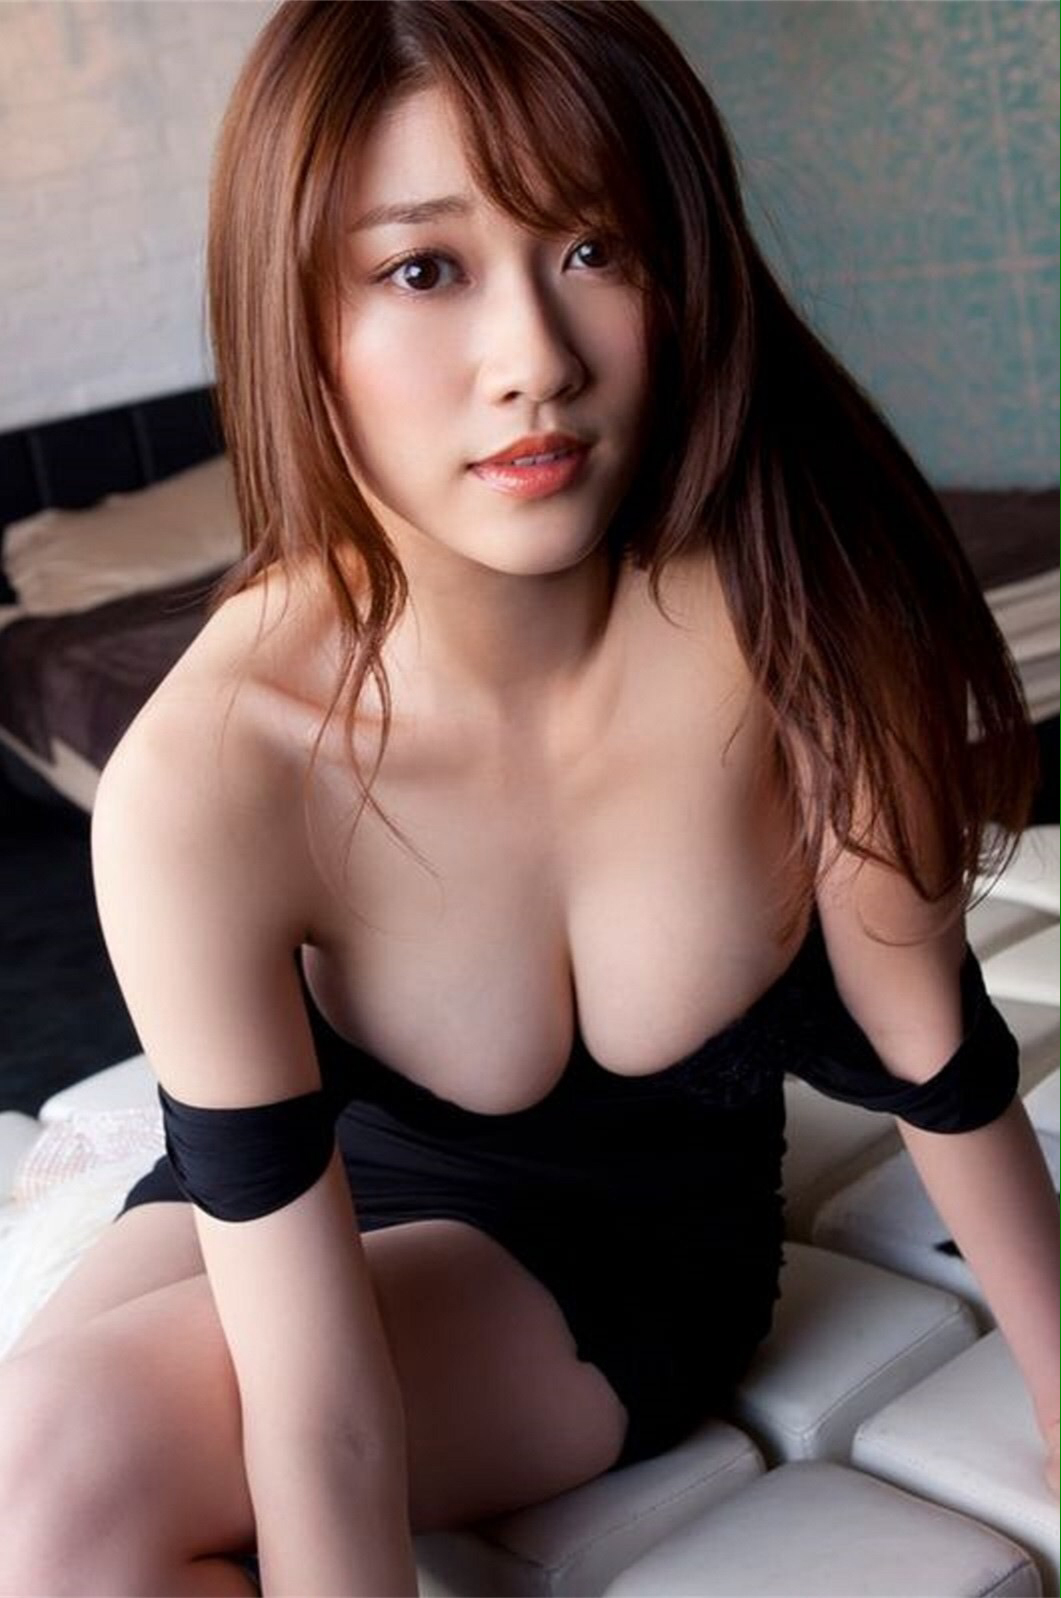 Find escort service tantra body to body massage